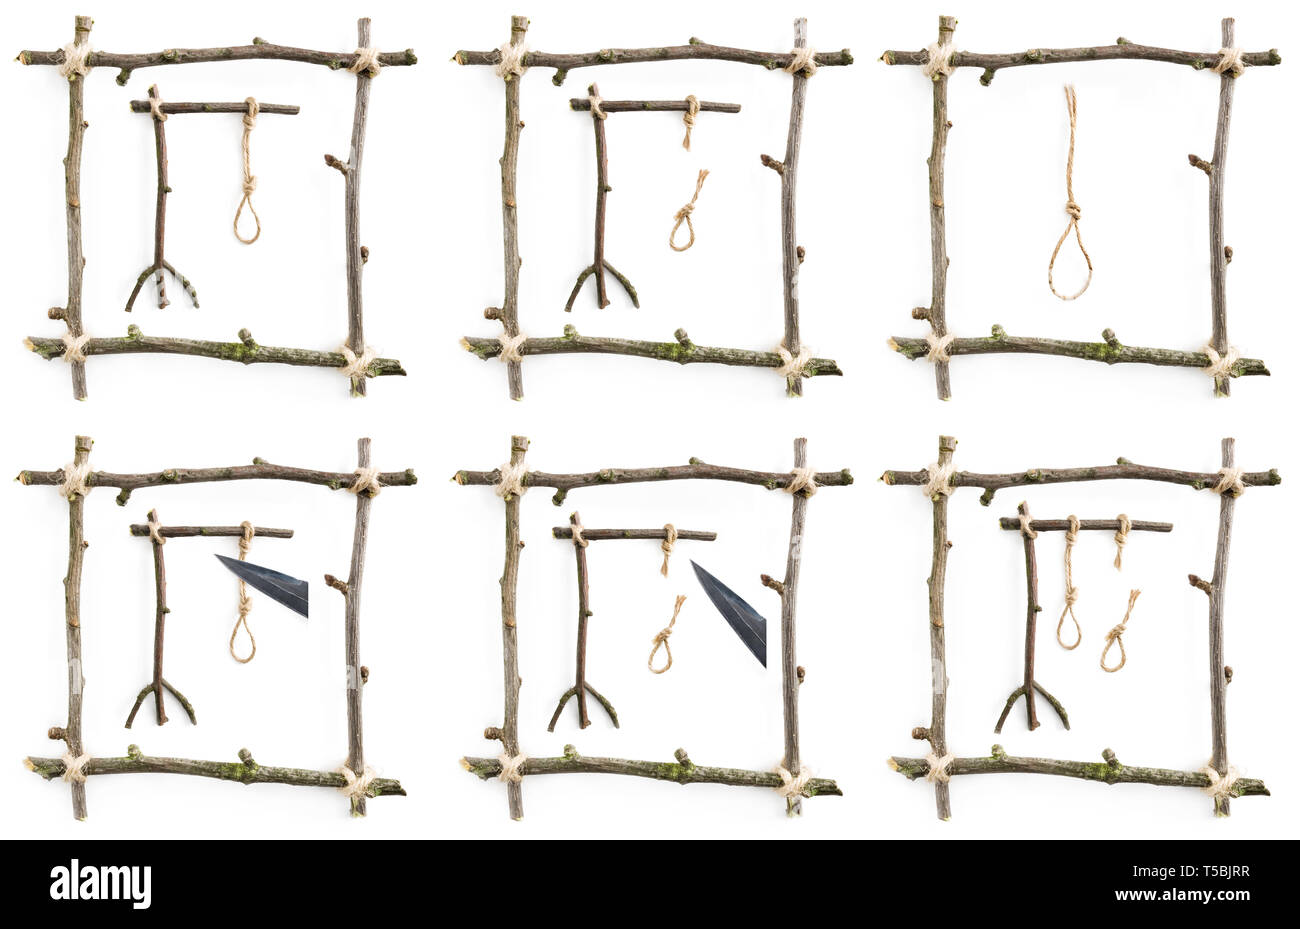 Collection of gallows in twig frame isolated on white background - Stock Image